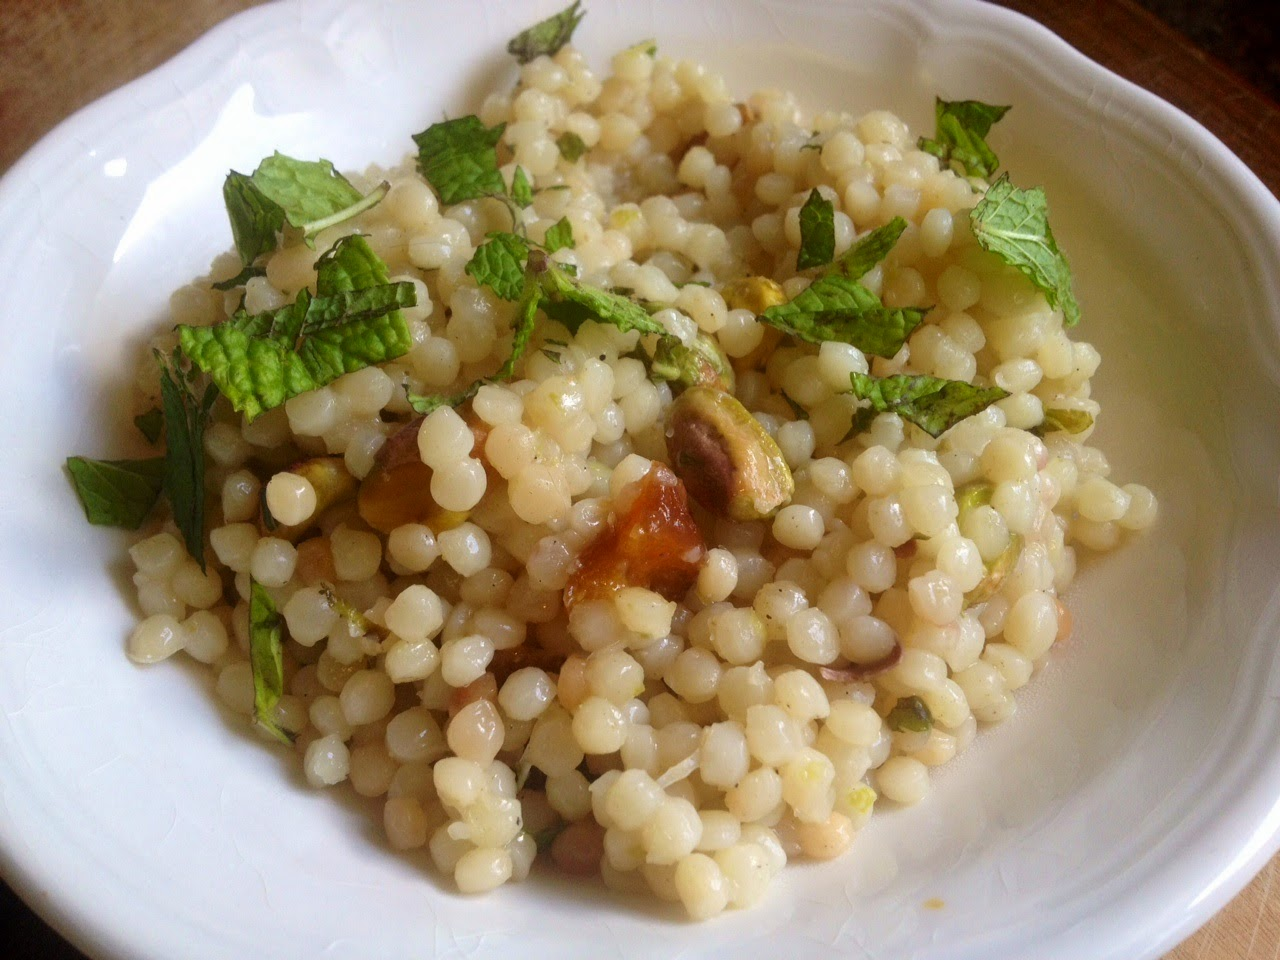 i heart pearl couscous